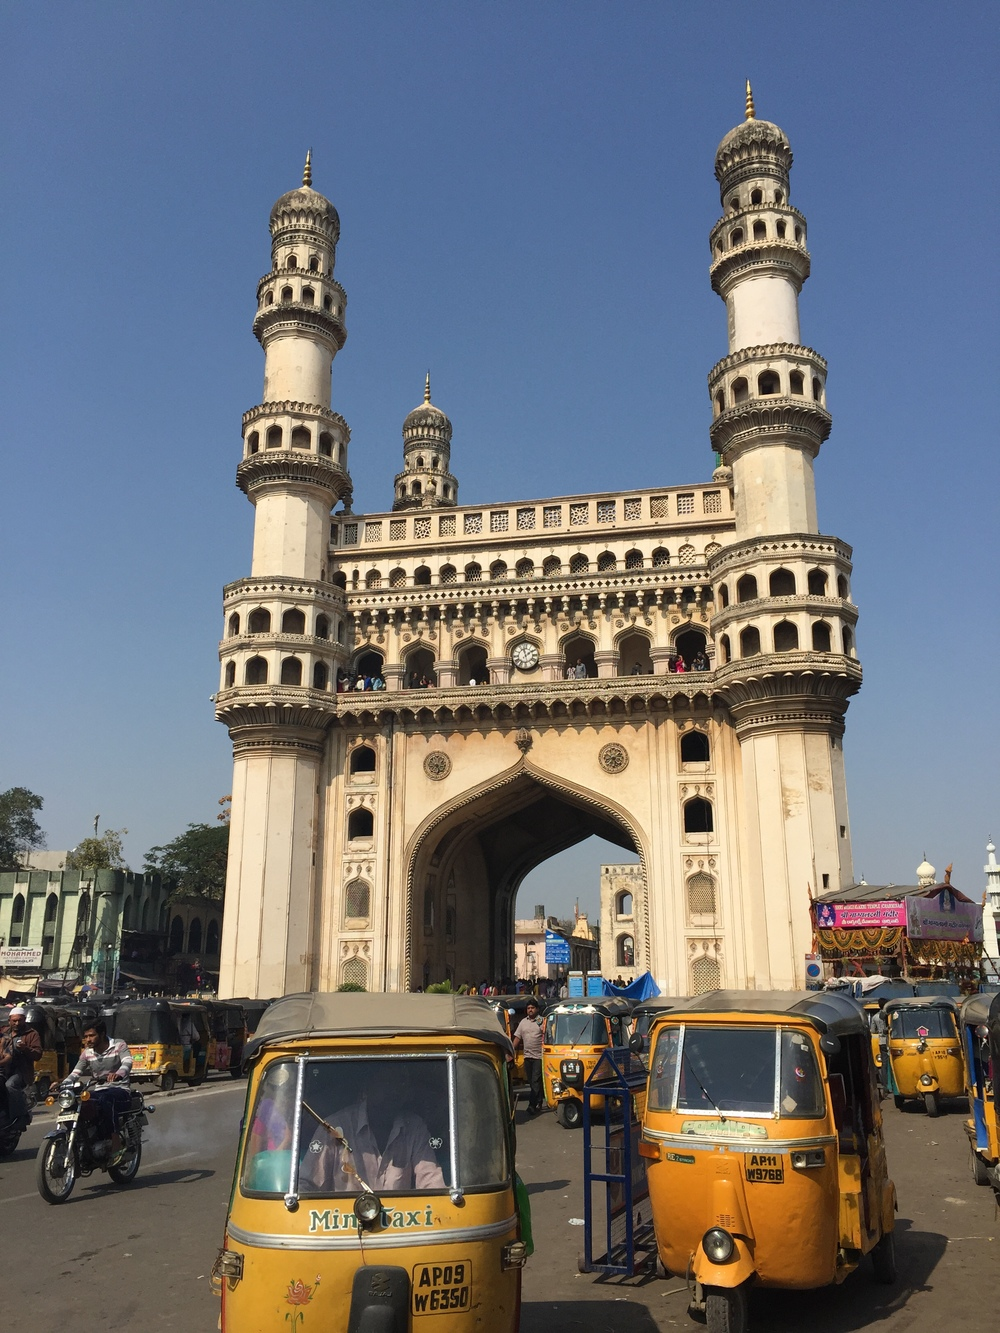 This is Charminar, another attraction in Hyderabad. Many of the country's main attractions, like the Taj Mahal and this, were built by the Muslim Mughals. The current government, a Hindu nationalist party, isn't super keen about promoting these monuments